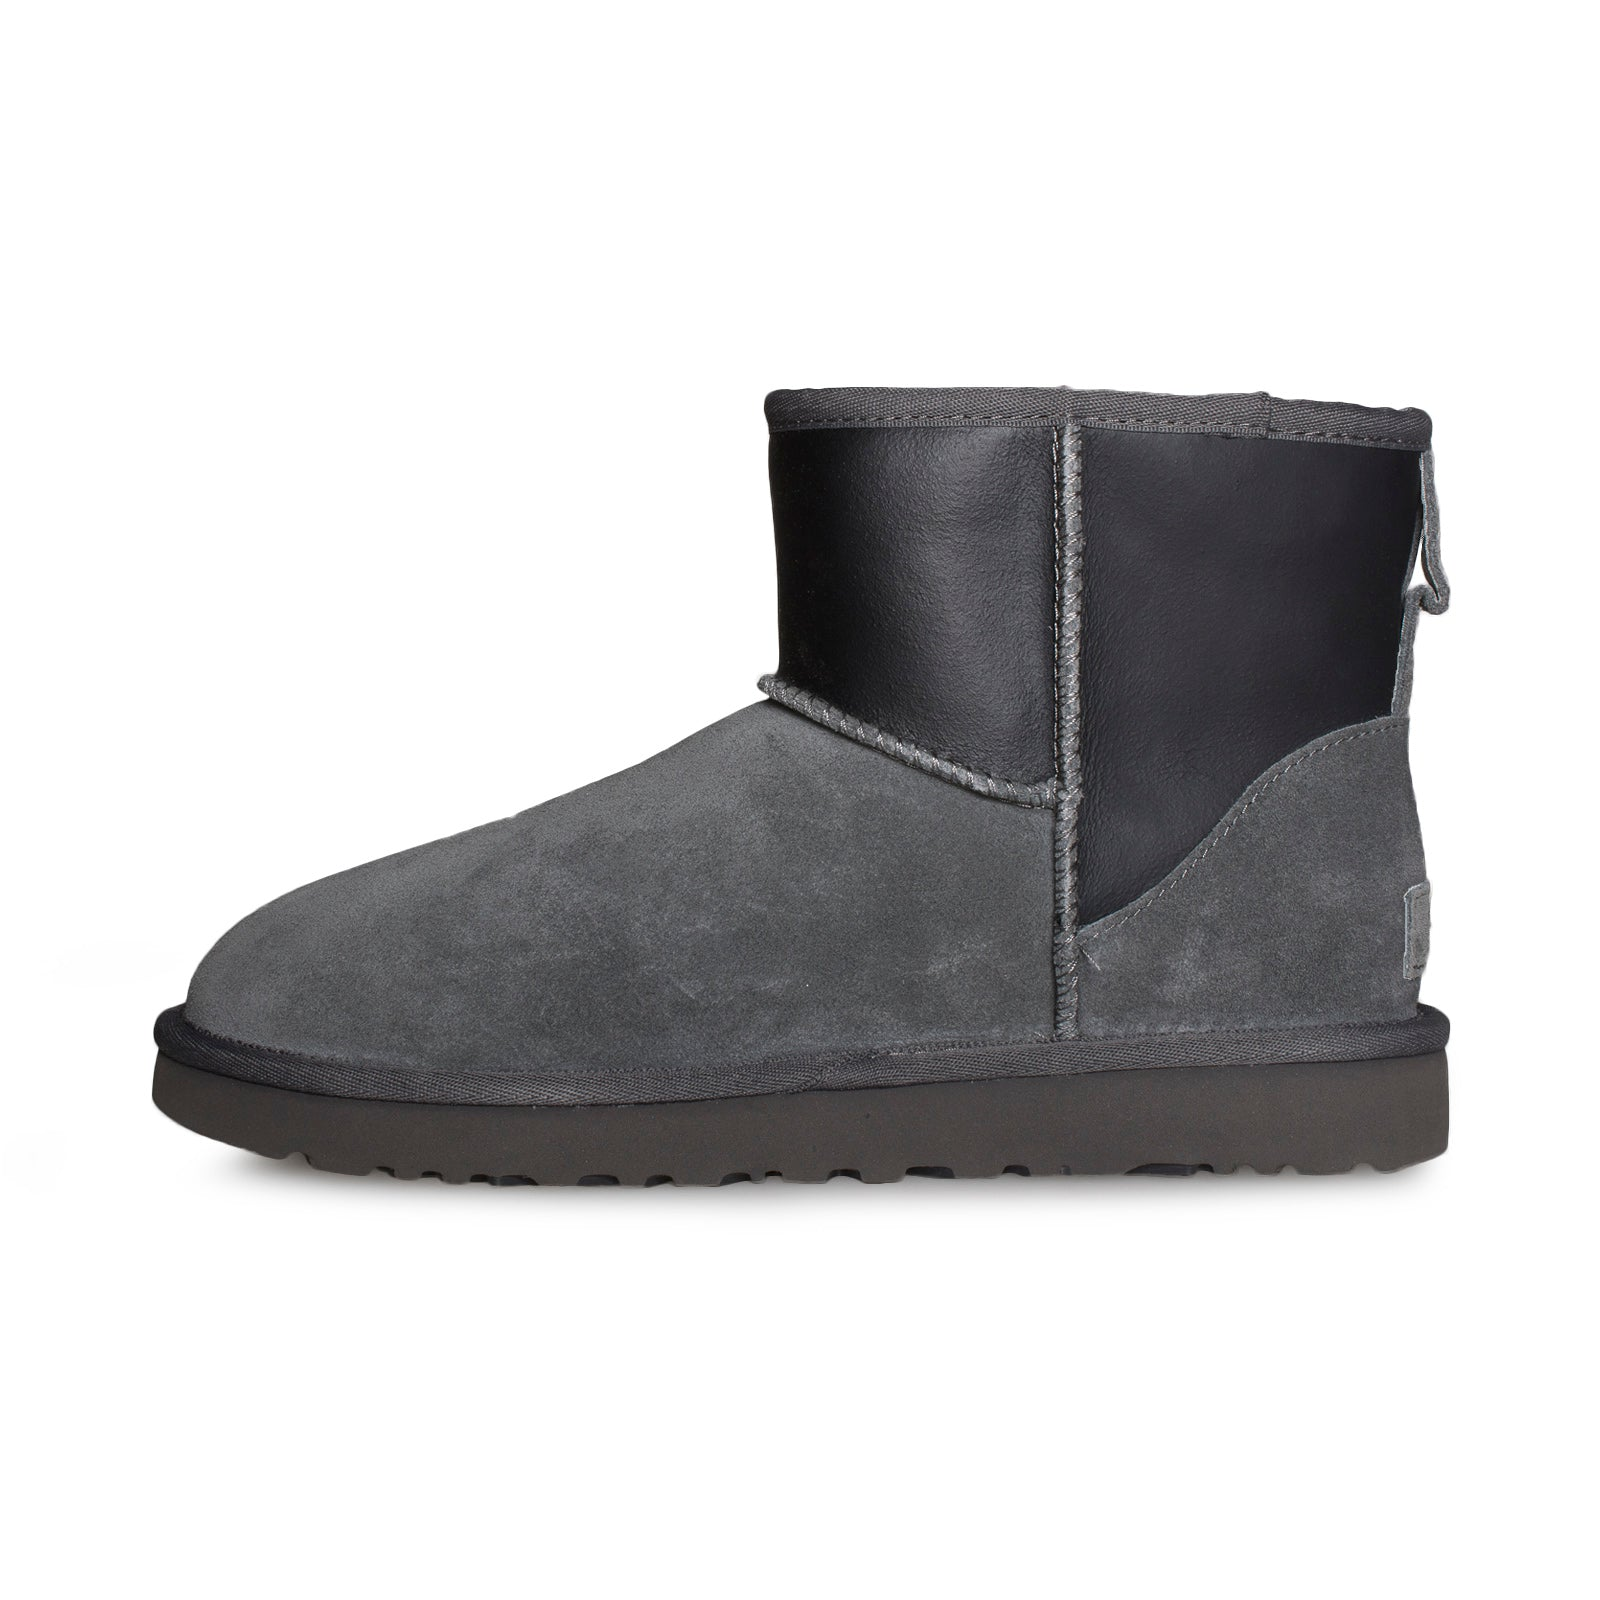 4f03c149122 UGG Classic Mini UGG Rubber Graphic Grey Black Boots - Women's